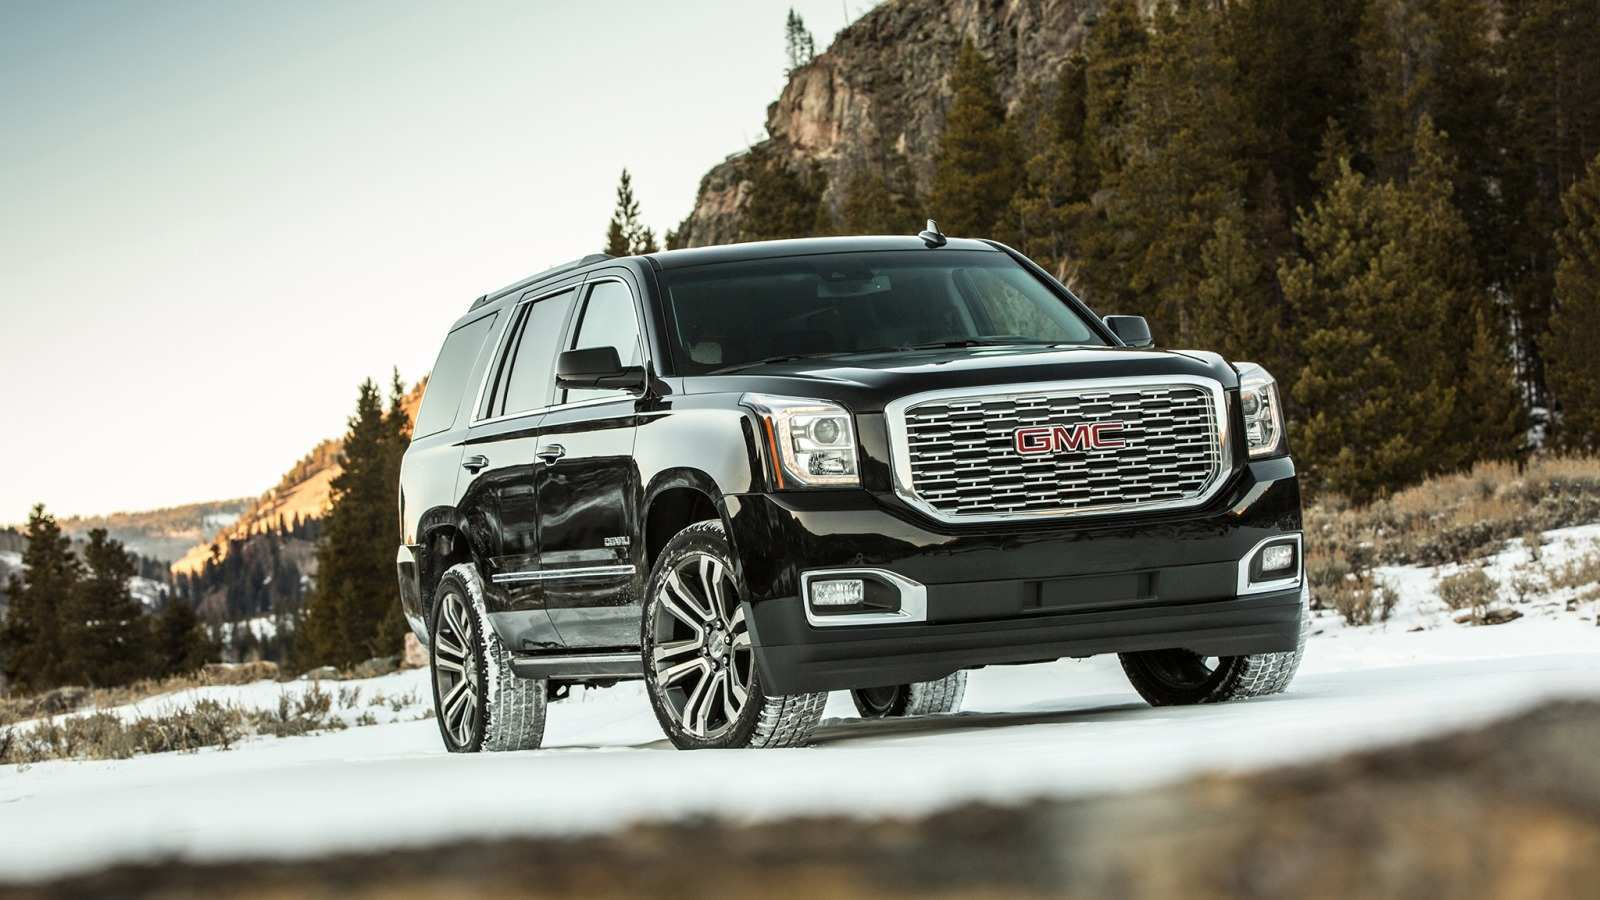 16 All New The 2019 Gmc Lease Exterior First Drive with The 2019 Gmc Lease Exterior